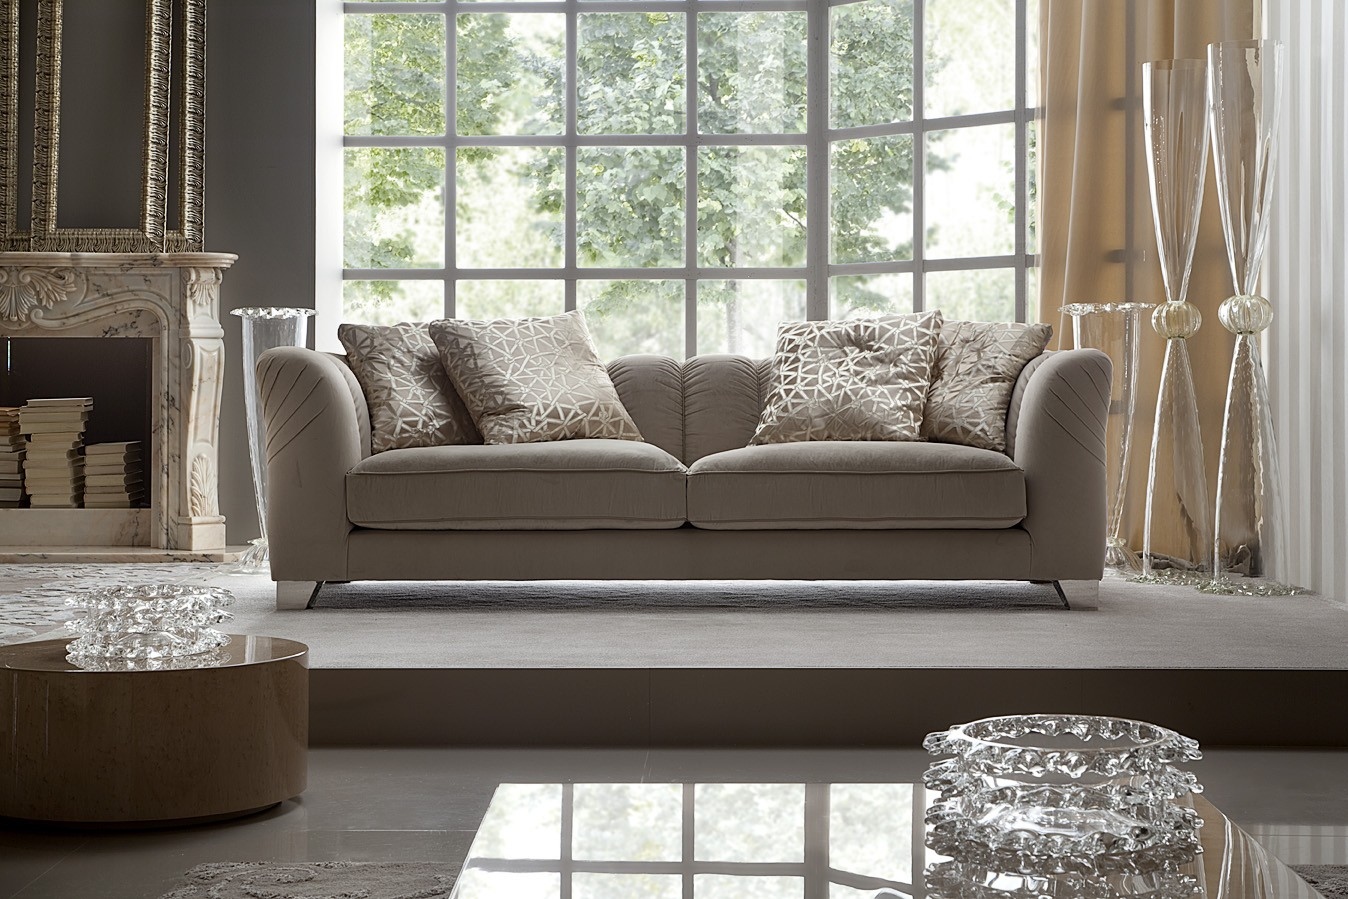 living sofa design seat foam online modern furniture 2013 room sofas